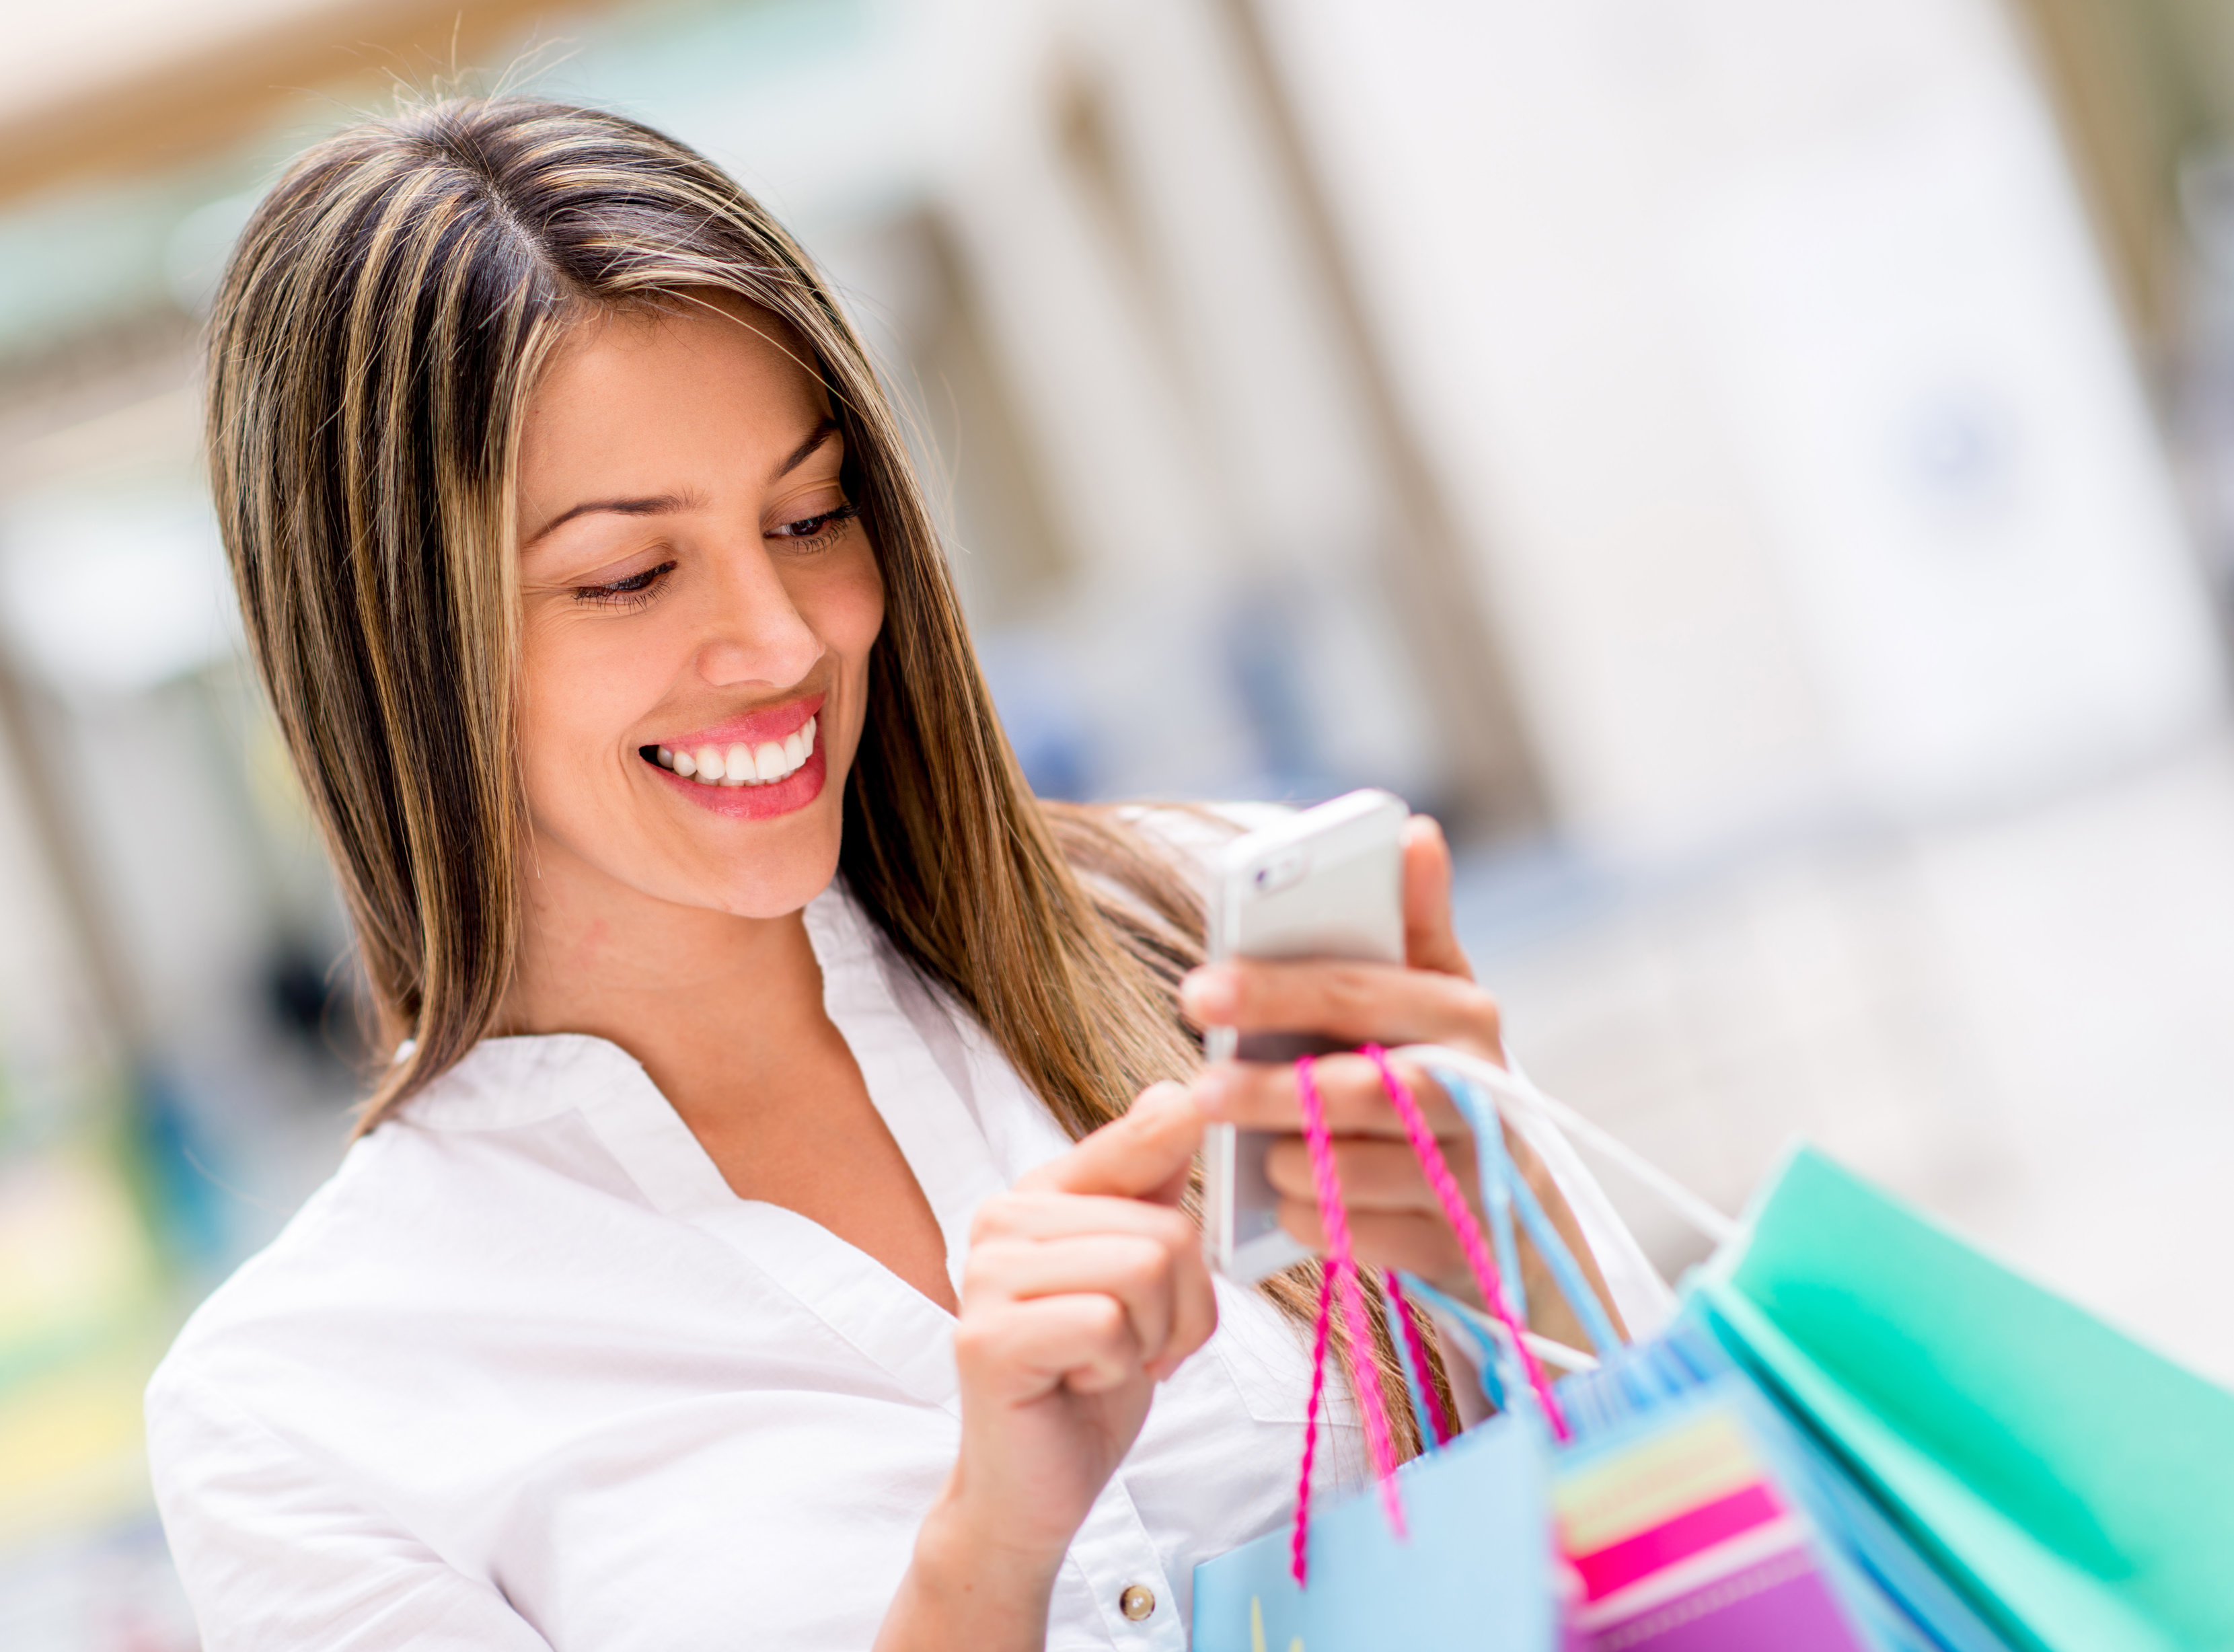 7 Tips on How to Mentally Deal with Impulse Buying